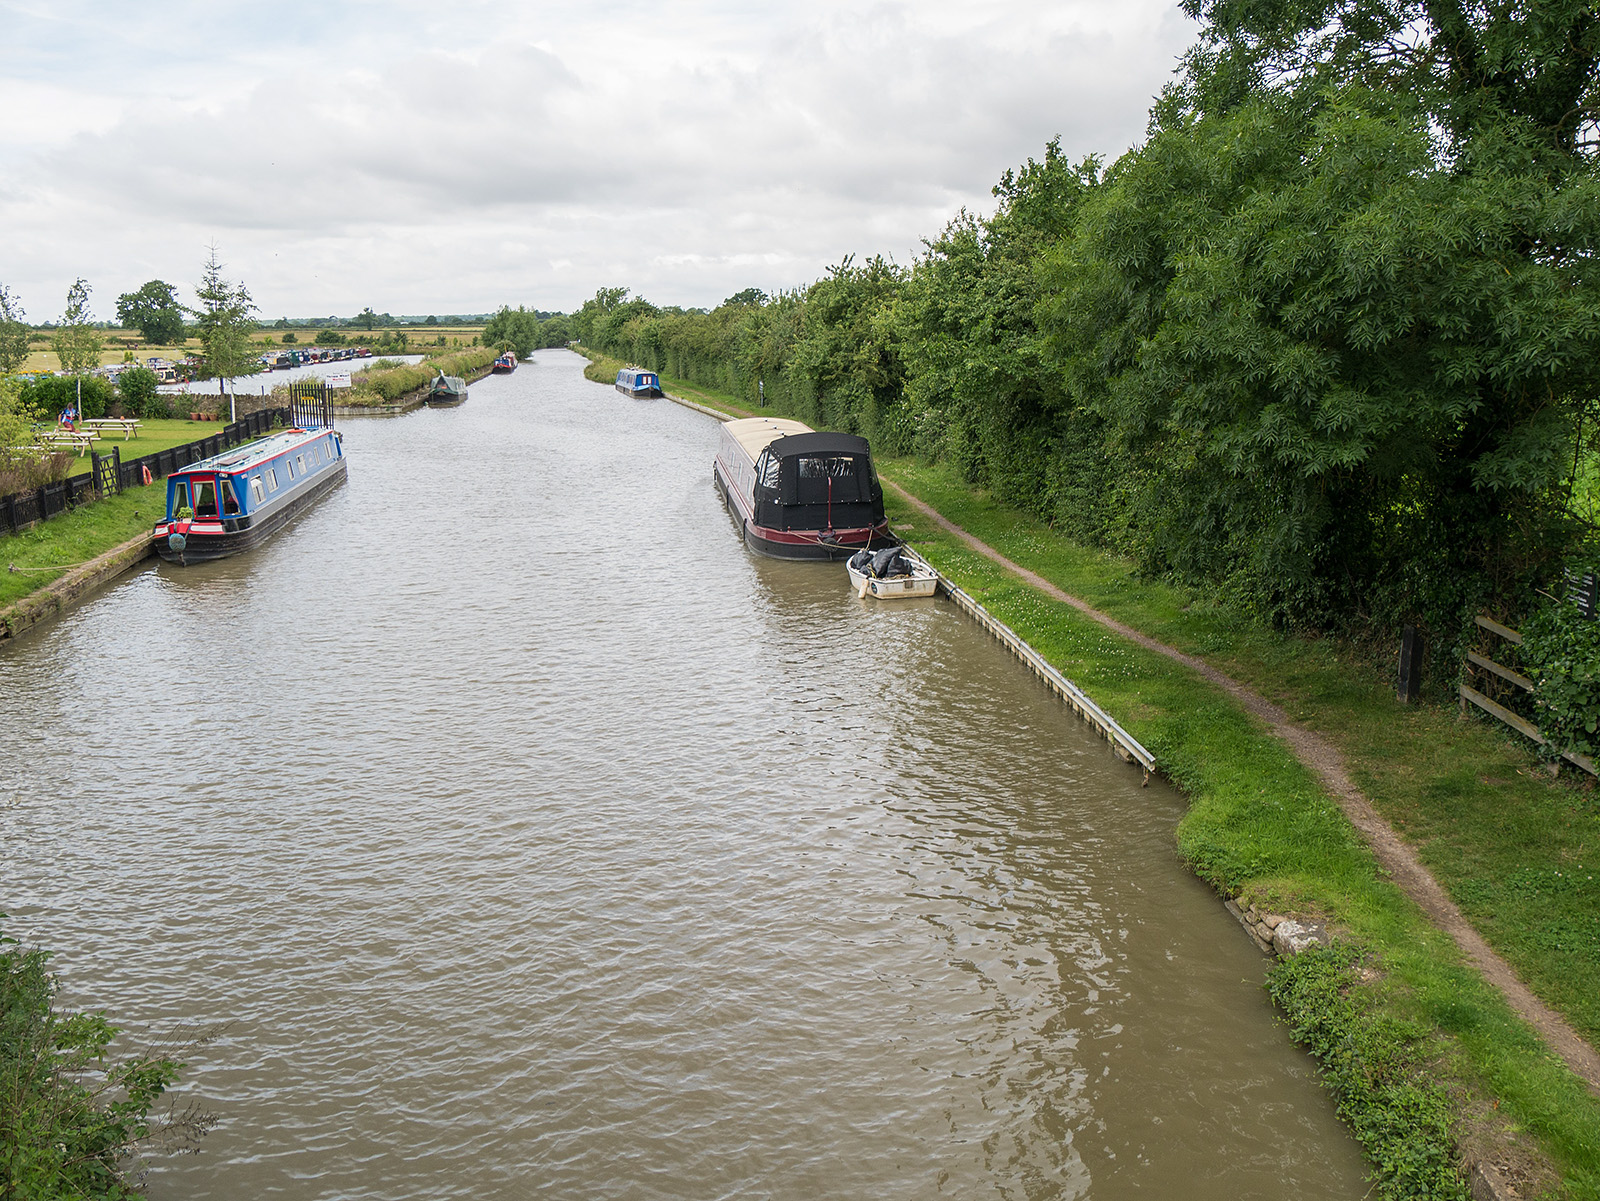 Looking ahead from bridge 64 towards Thrupp Wharf